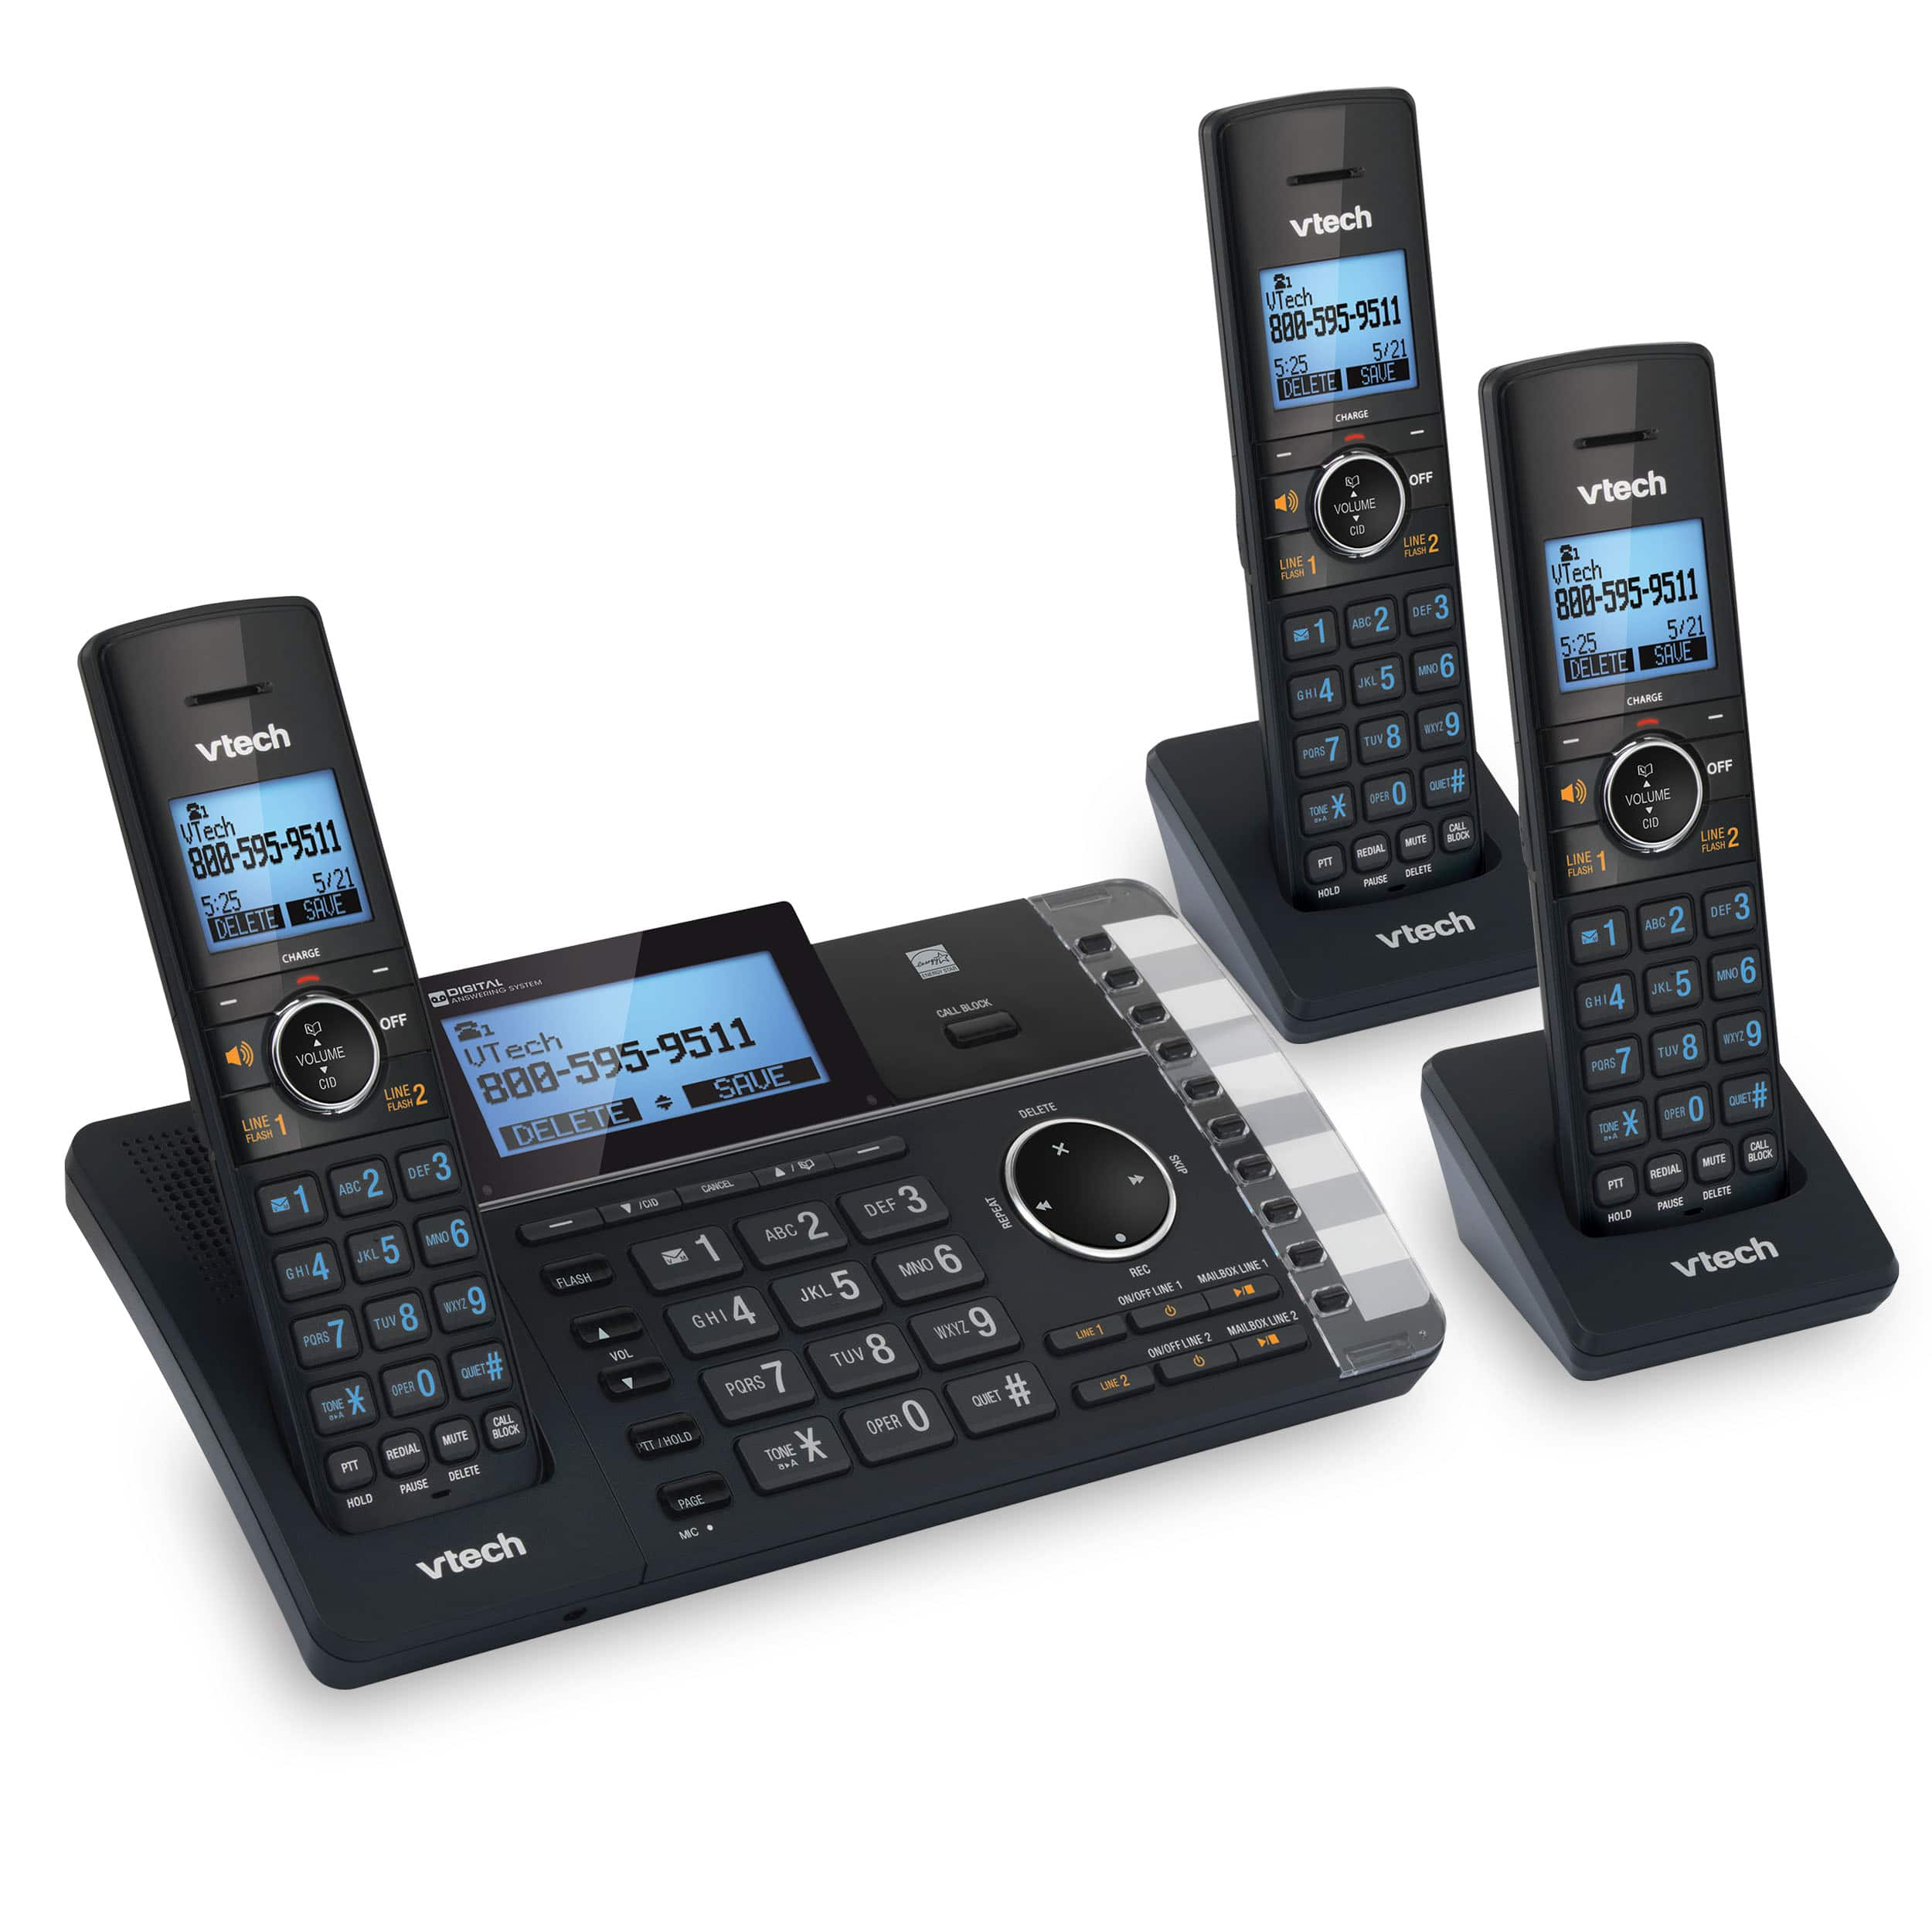 3 Handset 2-Line Cordless Answering System with Smart Call Blocker